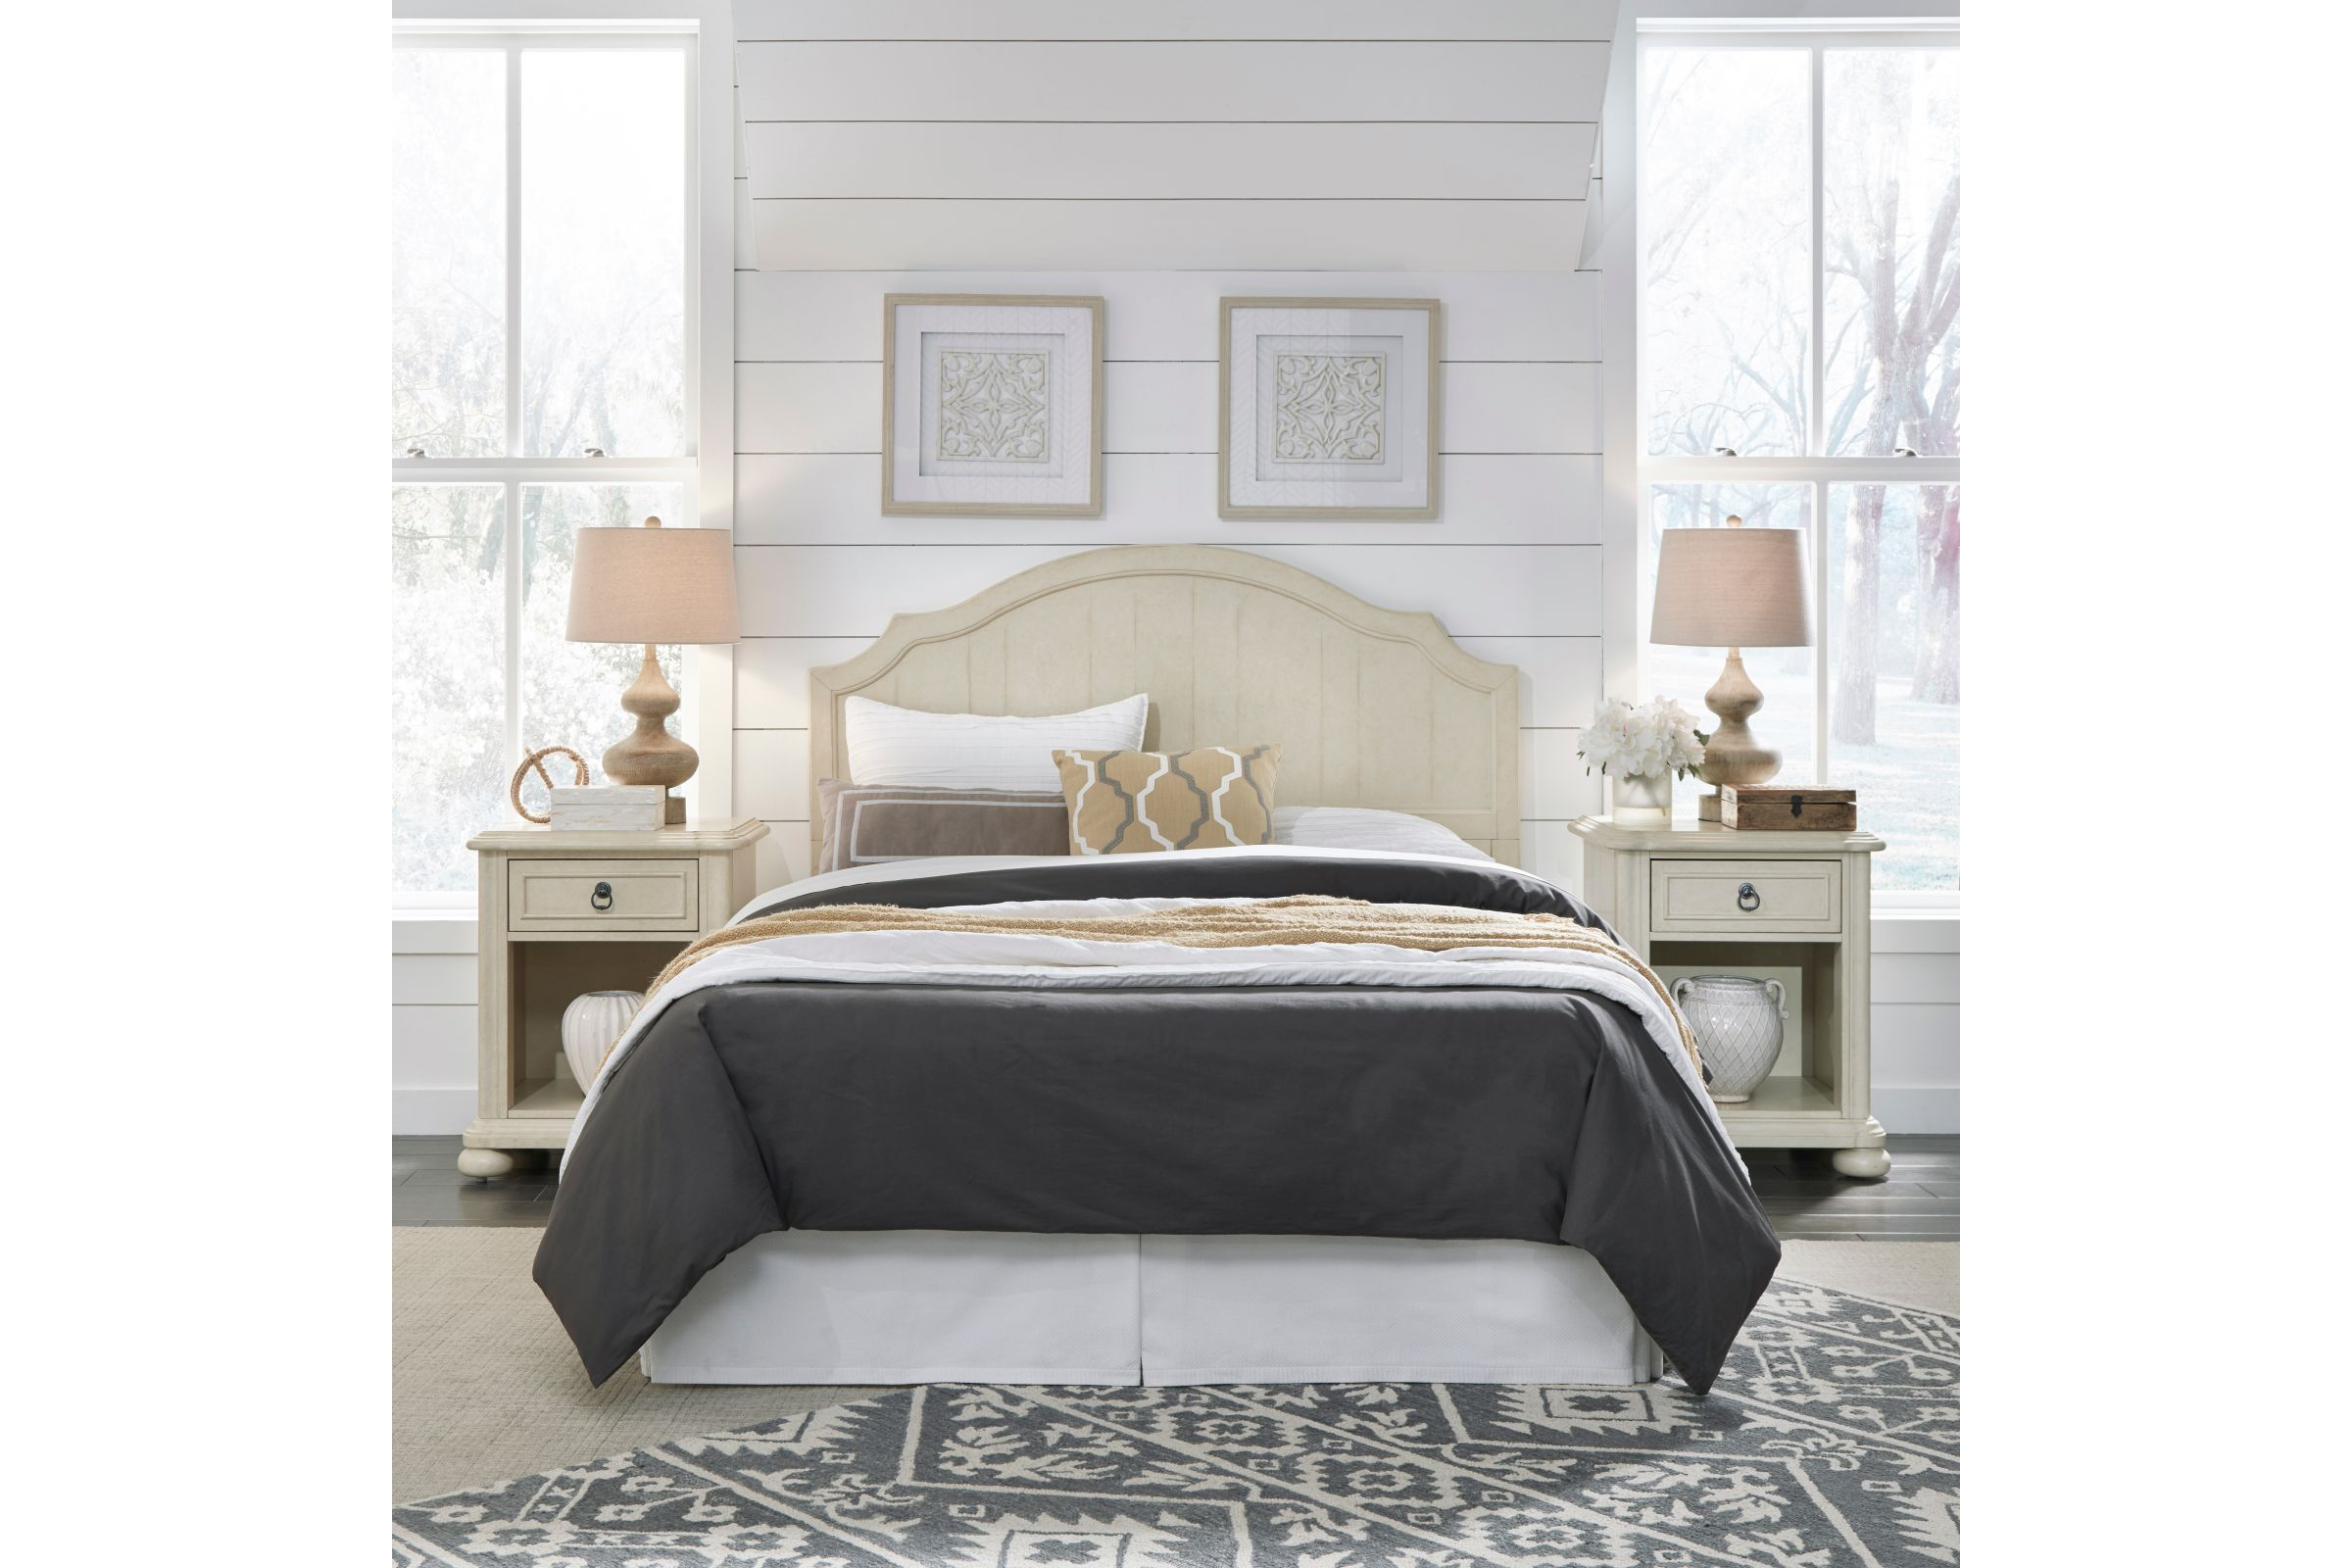 Provence Antiqued White Queen Headboard 2 Night Stands